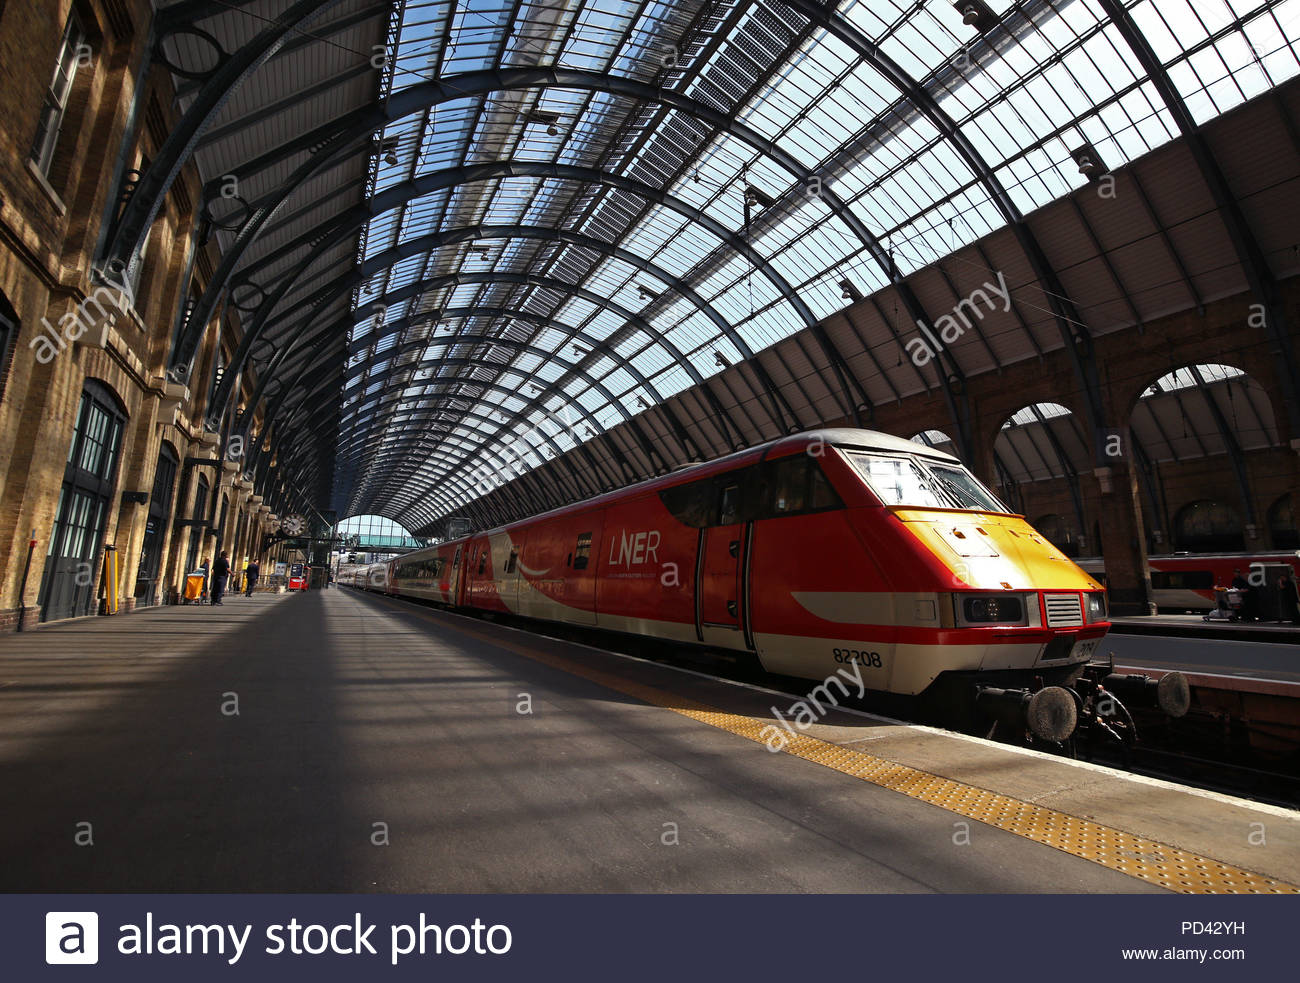 File photo dated 25/06/18 of a London North Eastern Railway (LNER) train at Kings Cross station in London. Punctuality for London-Scotland trains on the East Coast Main Line reached a seven-year low after services were returned to public control, figures show. - Stock Image